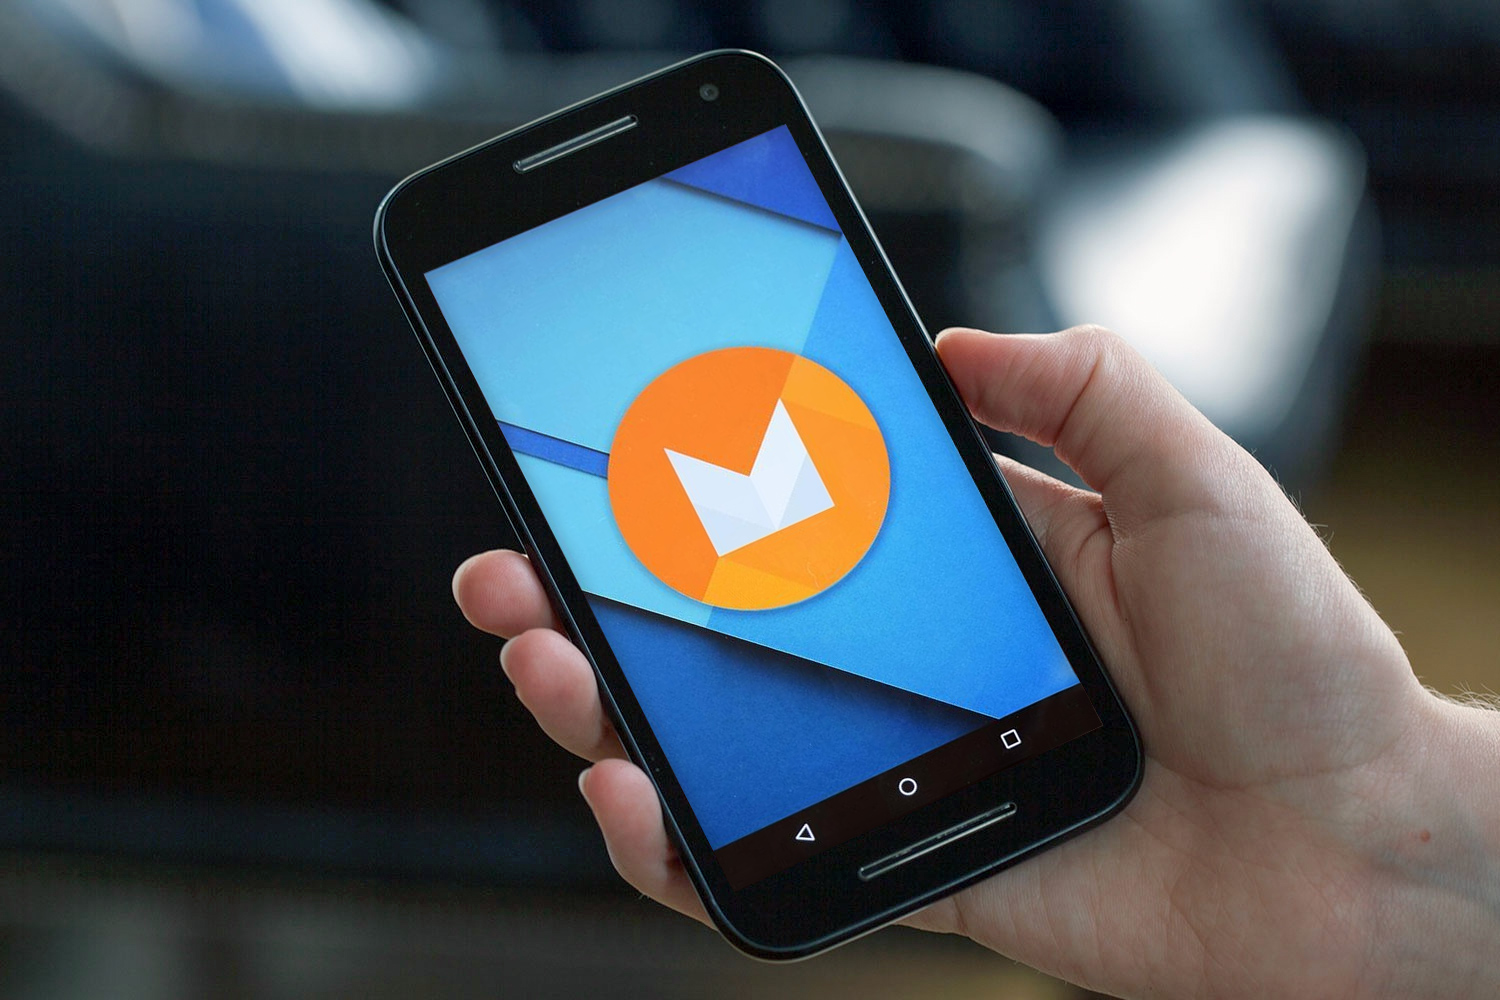 Phone Custom Os For Android Phones custom roms bring android 6 0 to older nexus devices digital trends marshmallow old phones rom